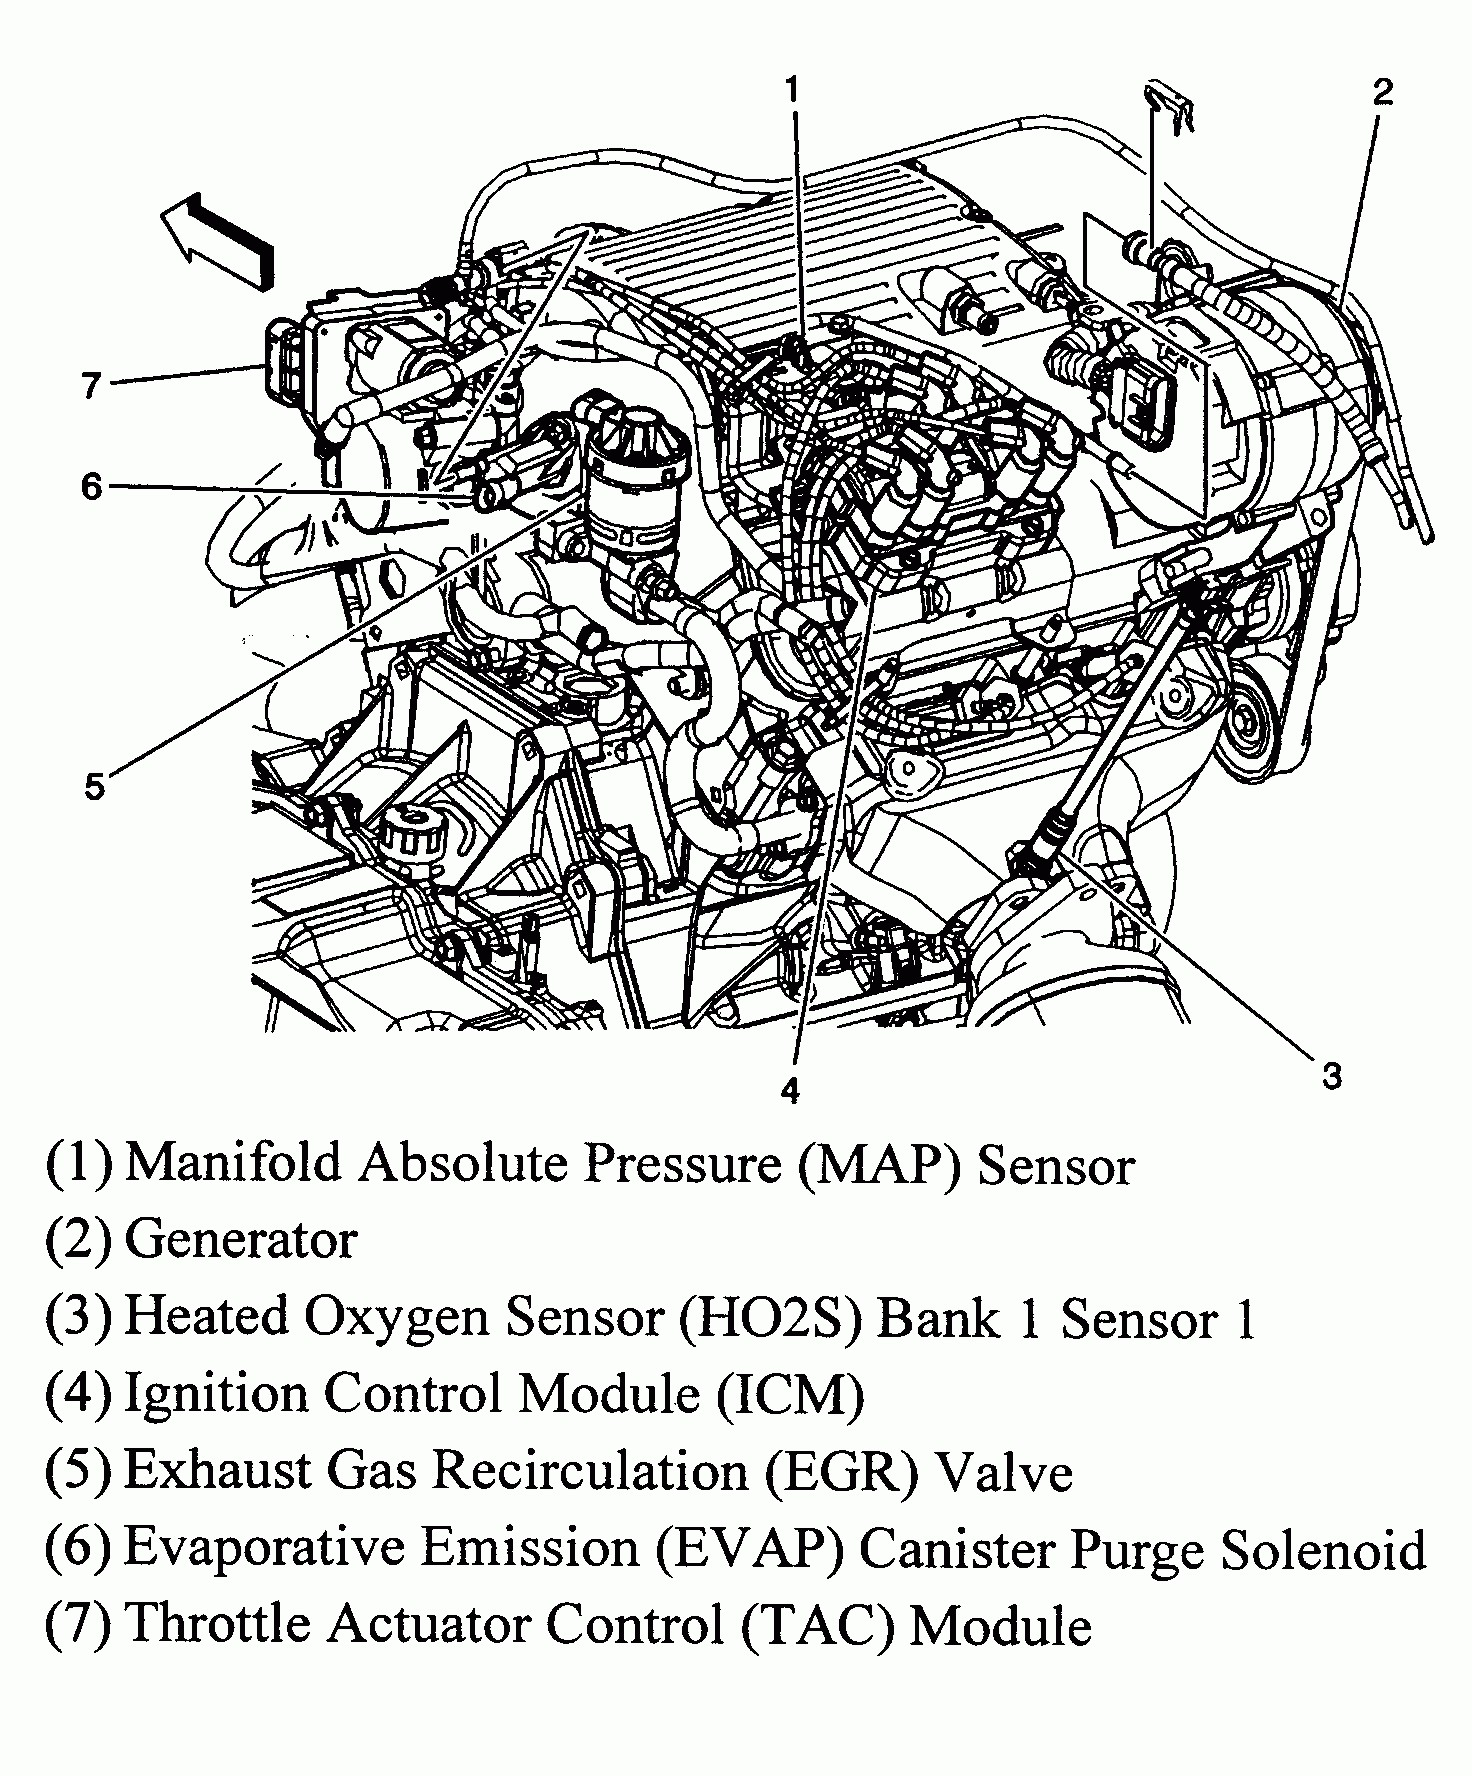 hight resolution of 2006 pontiac solstice engine diagram use wiring diagram pontiac solstice gxp engine diagram 2006 pontiac montana